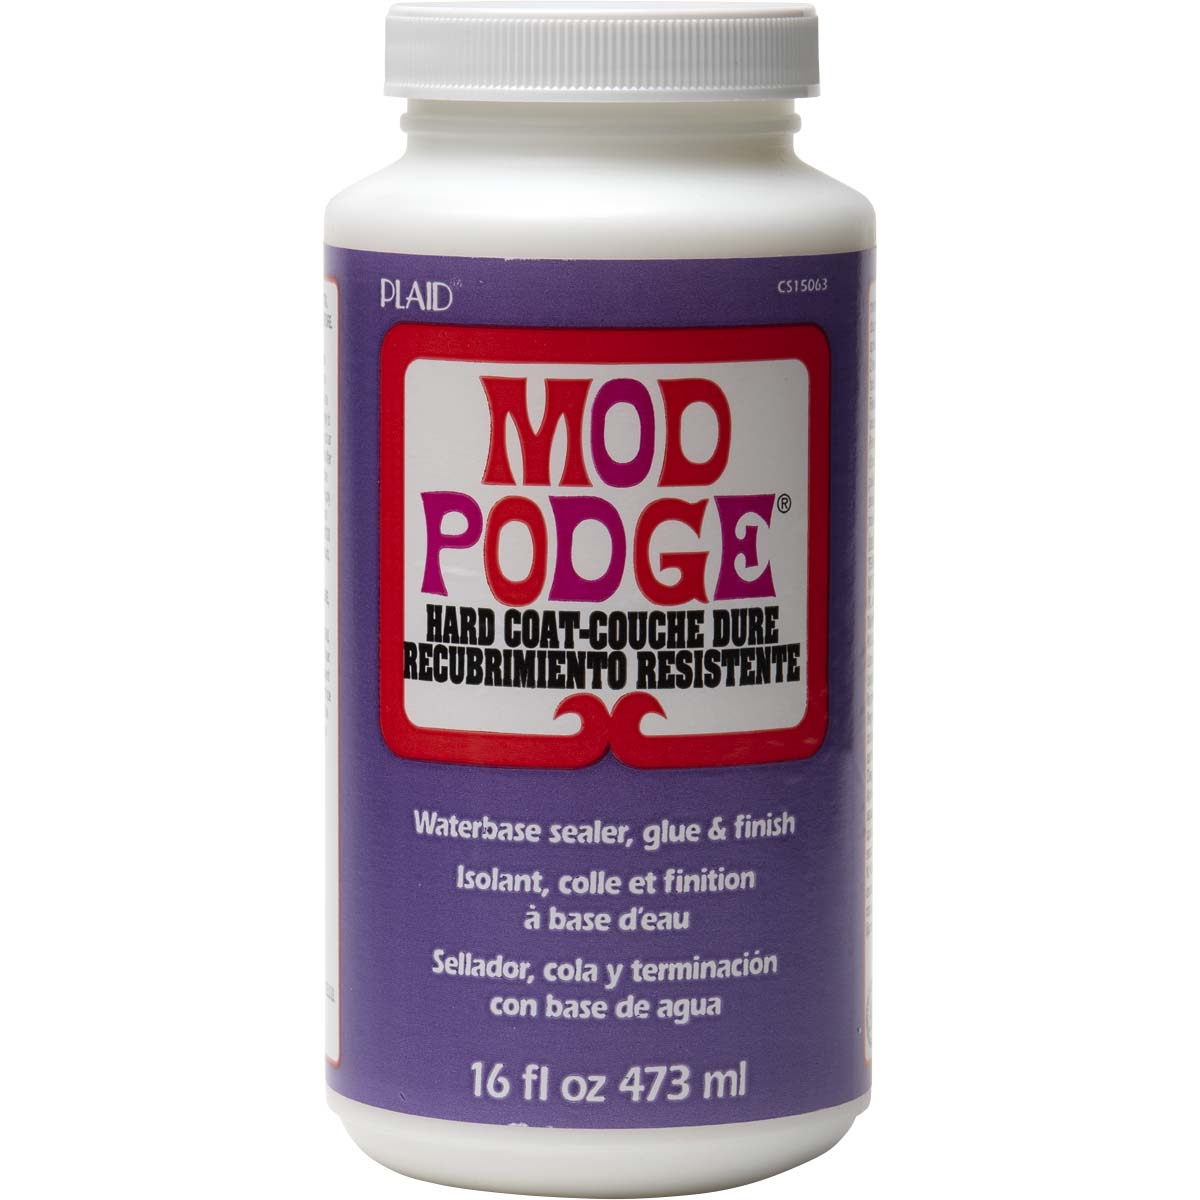 Mod Podge ® Hard Coat, 16 oz. - CS15063